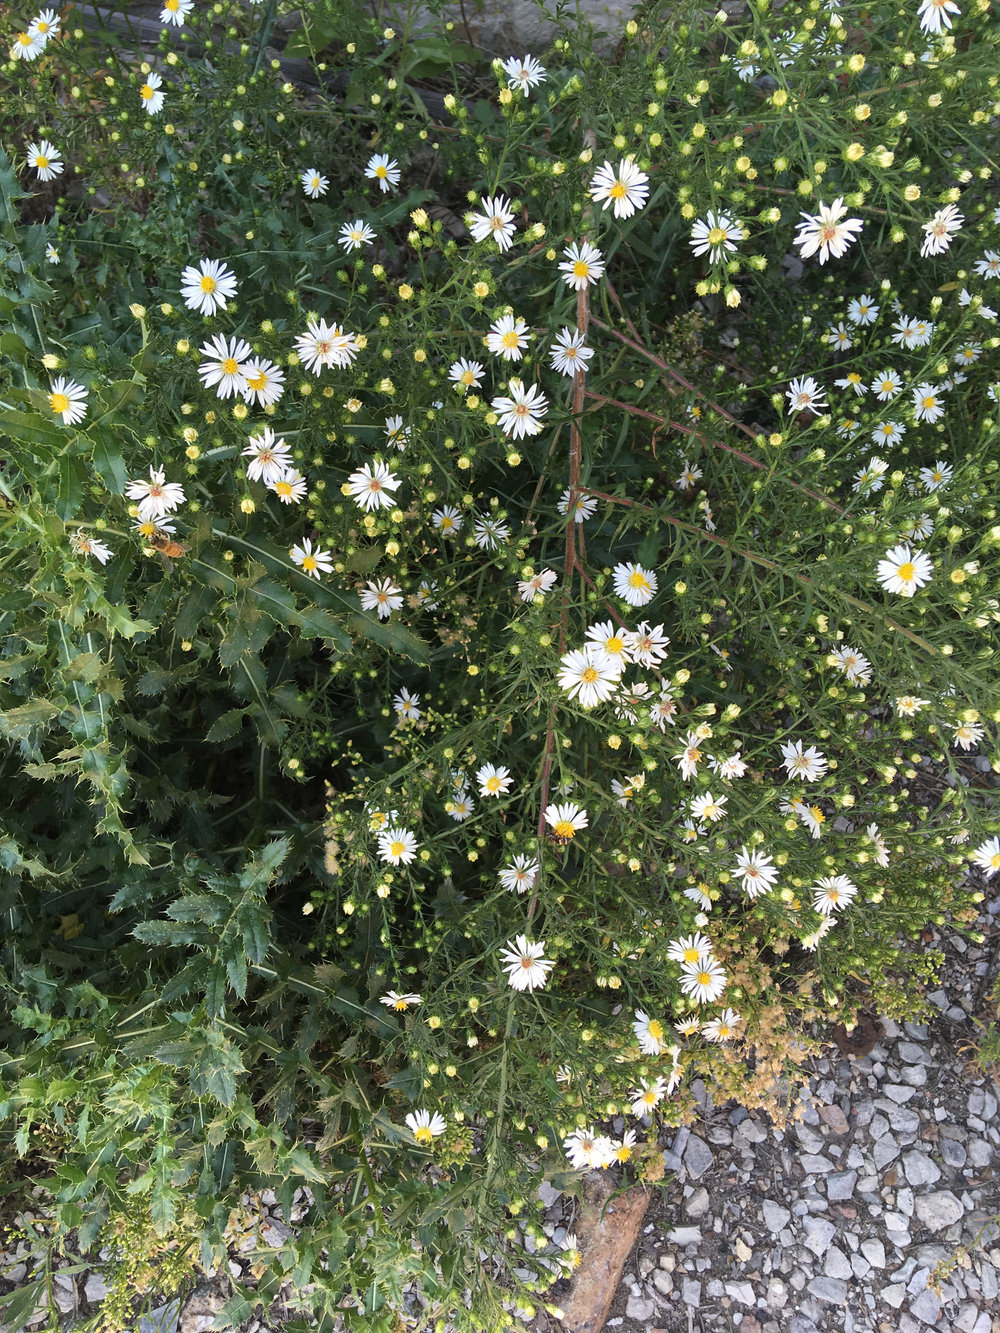 Part 1: in the beginning, flowers and weeds were collected -